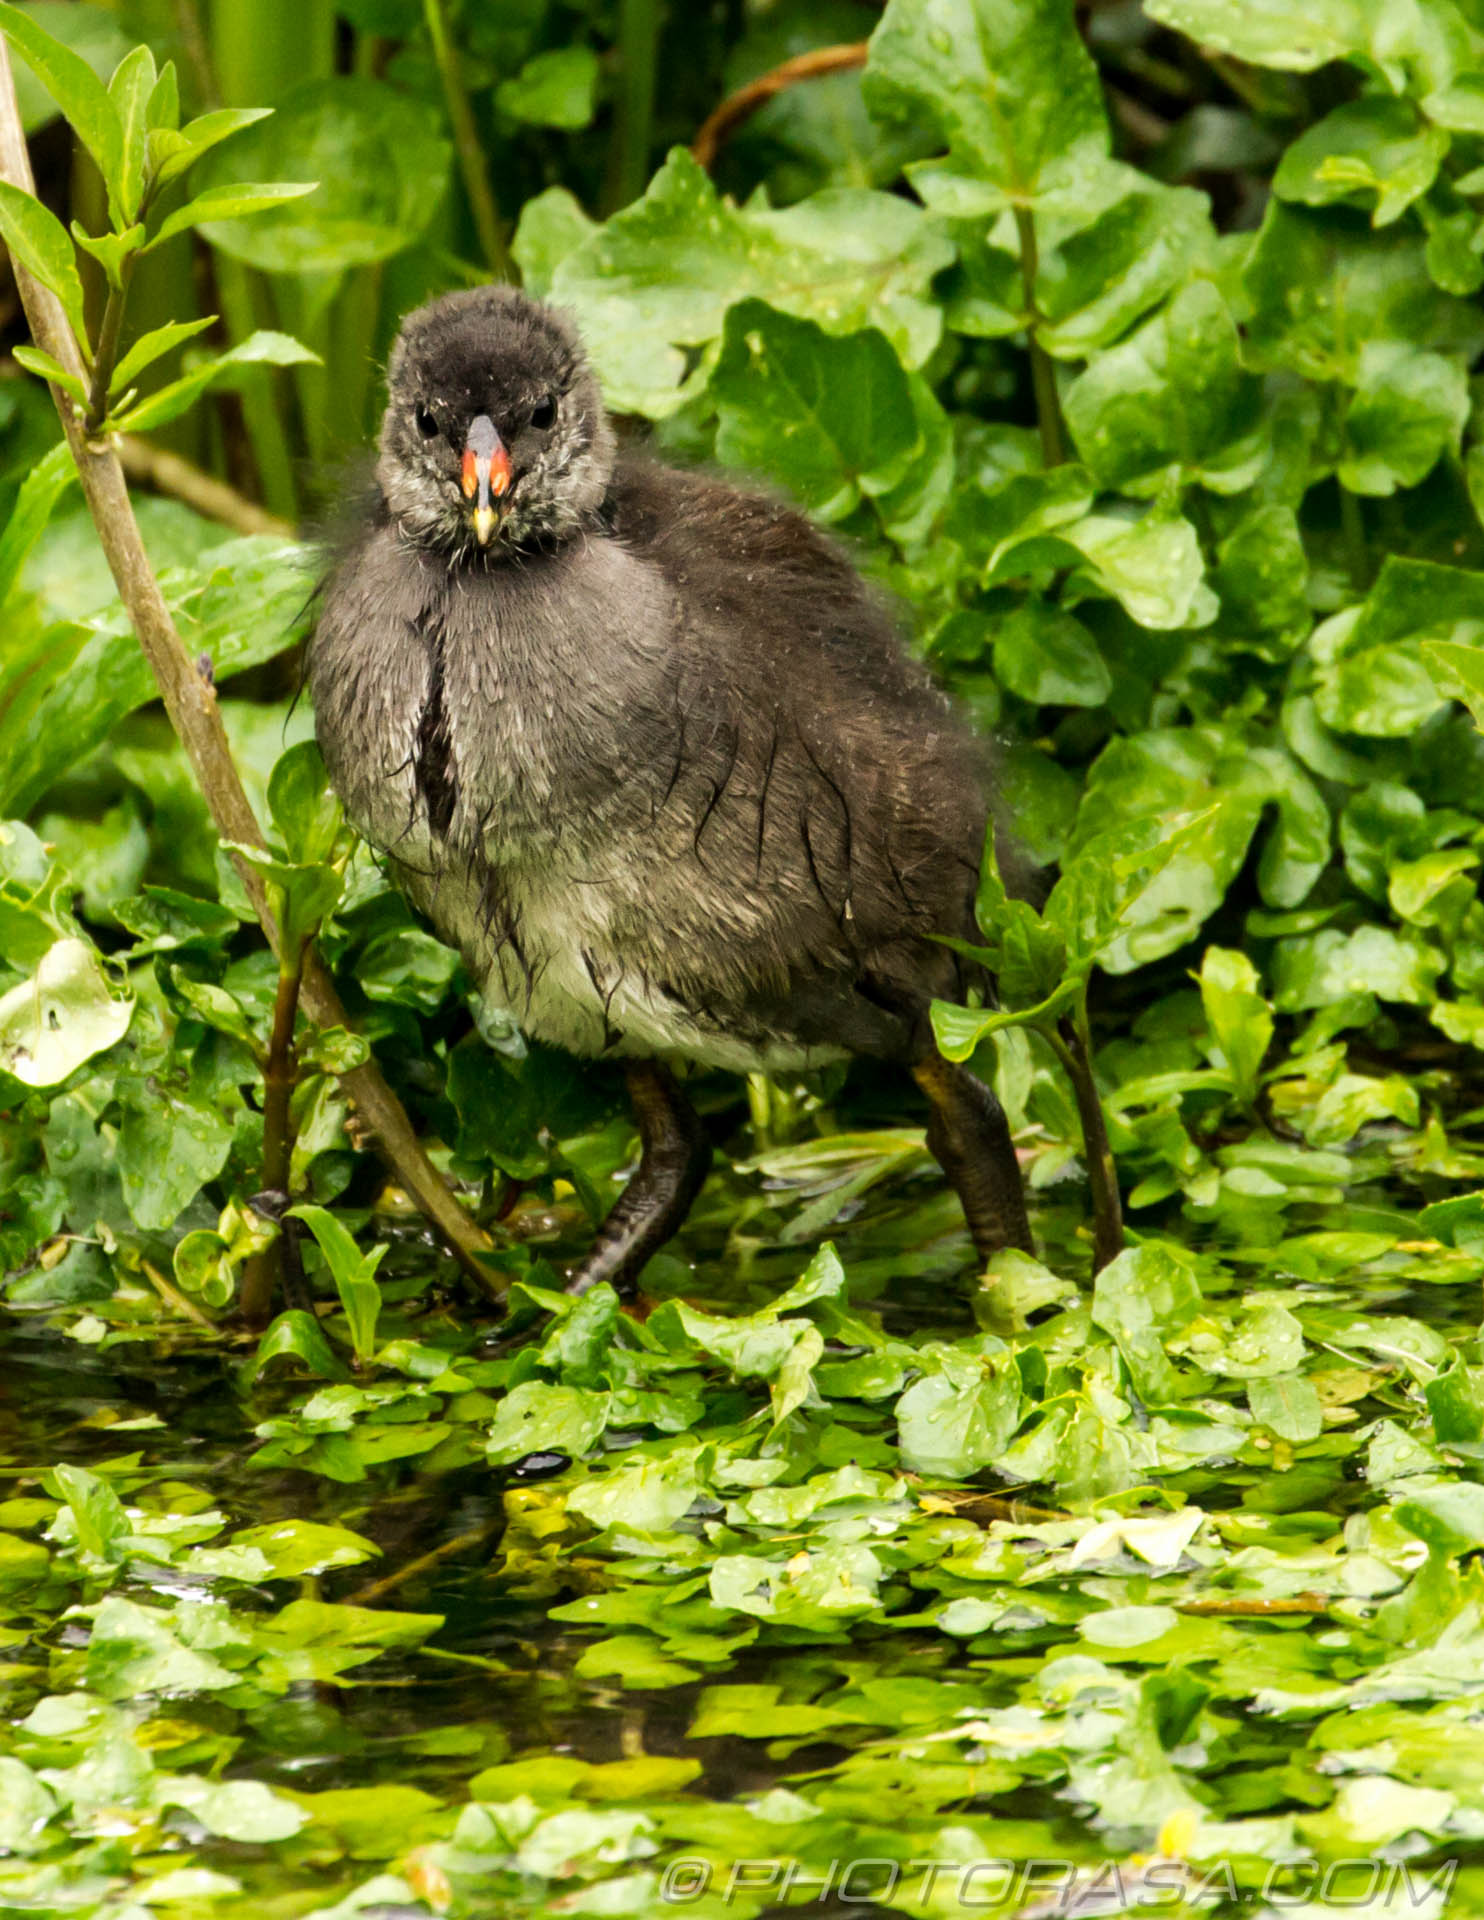 http://photorasa.com/baby-moorhens/moorhen-chick-having-a-paddle/